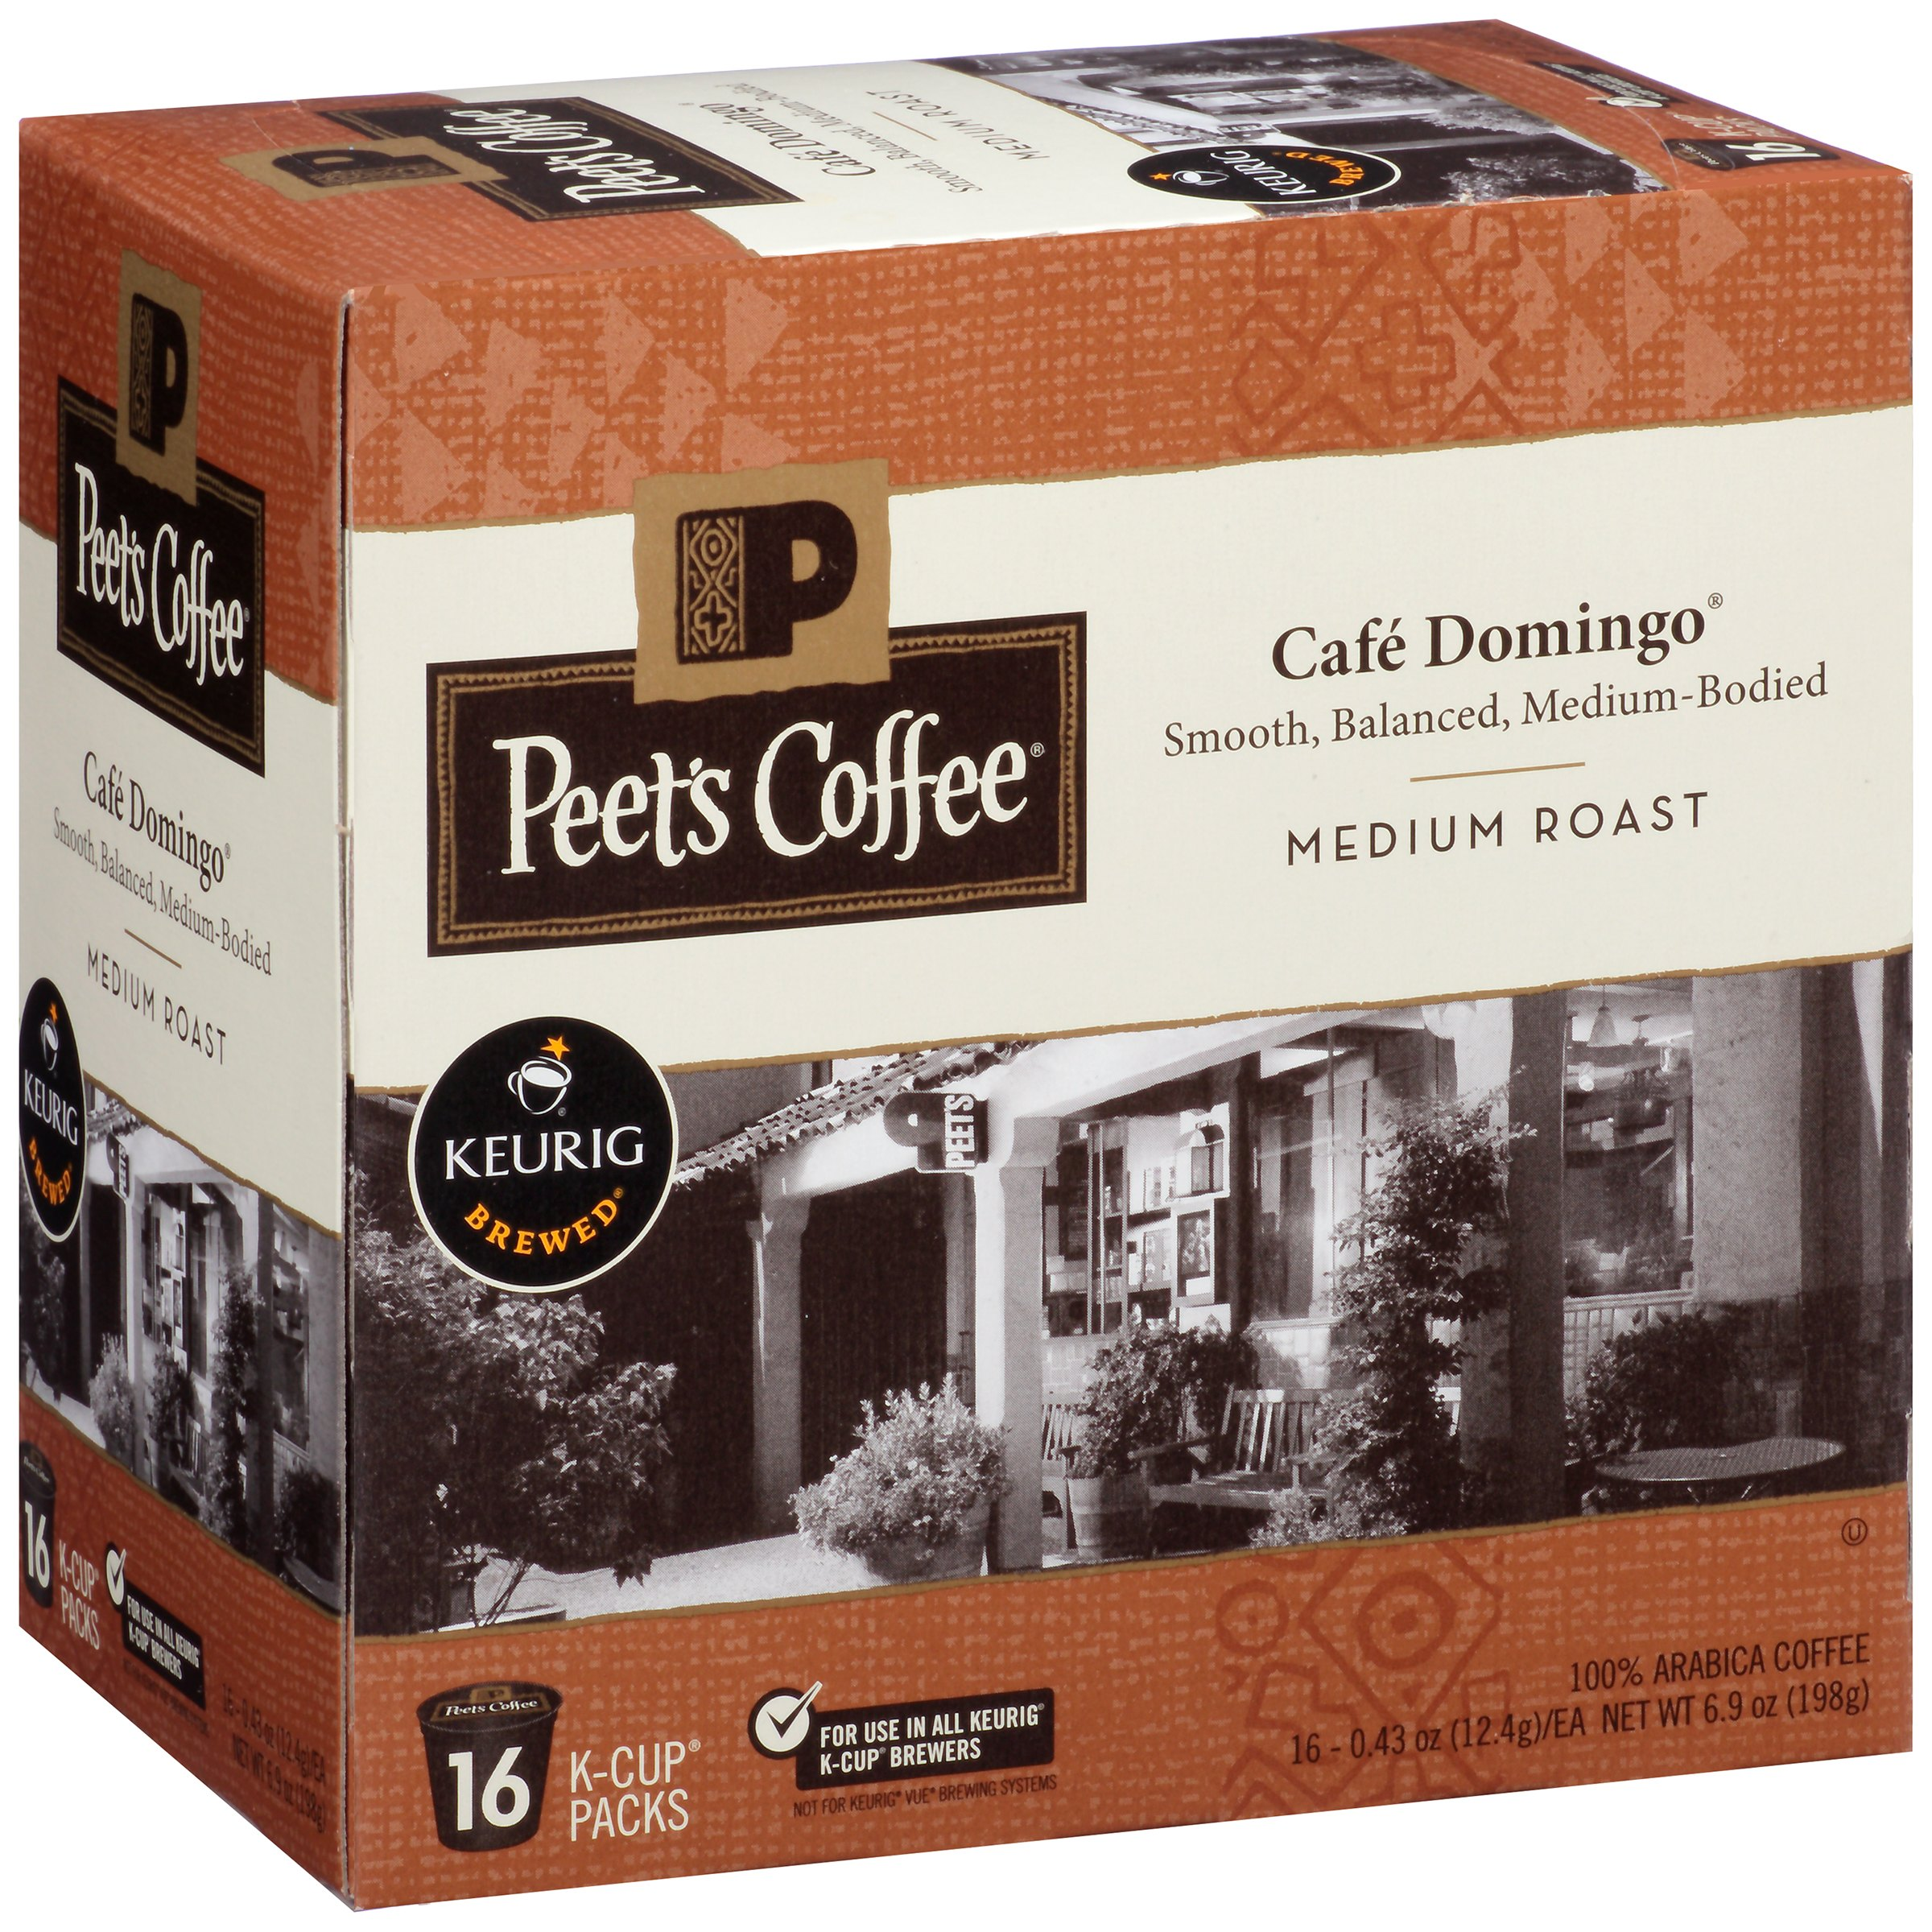 Peet's Coffee Cafe Domingo Medium Roast Coffee Pods, 16 pods